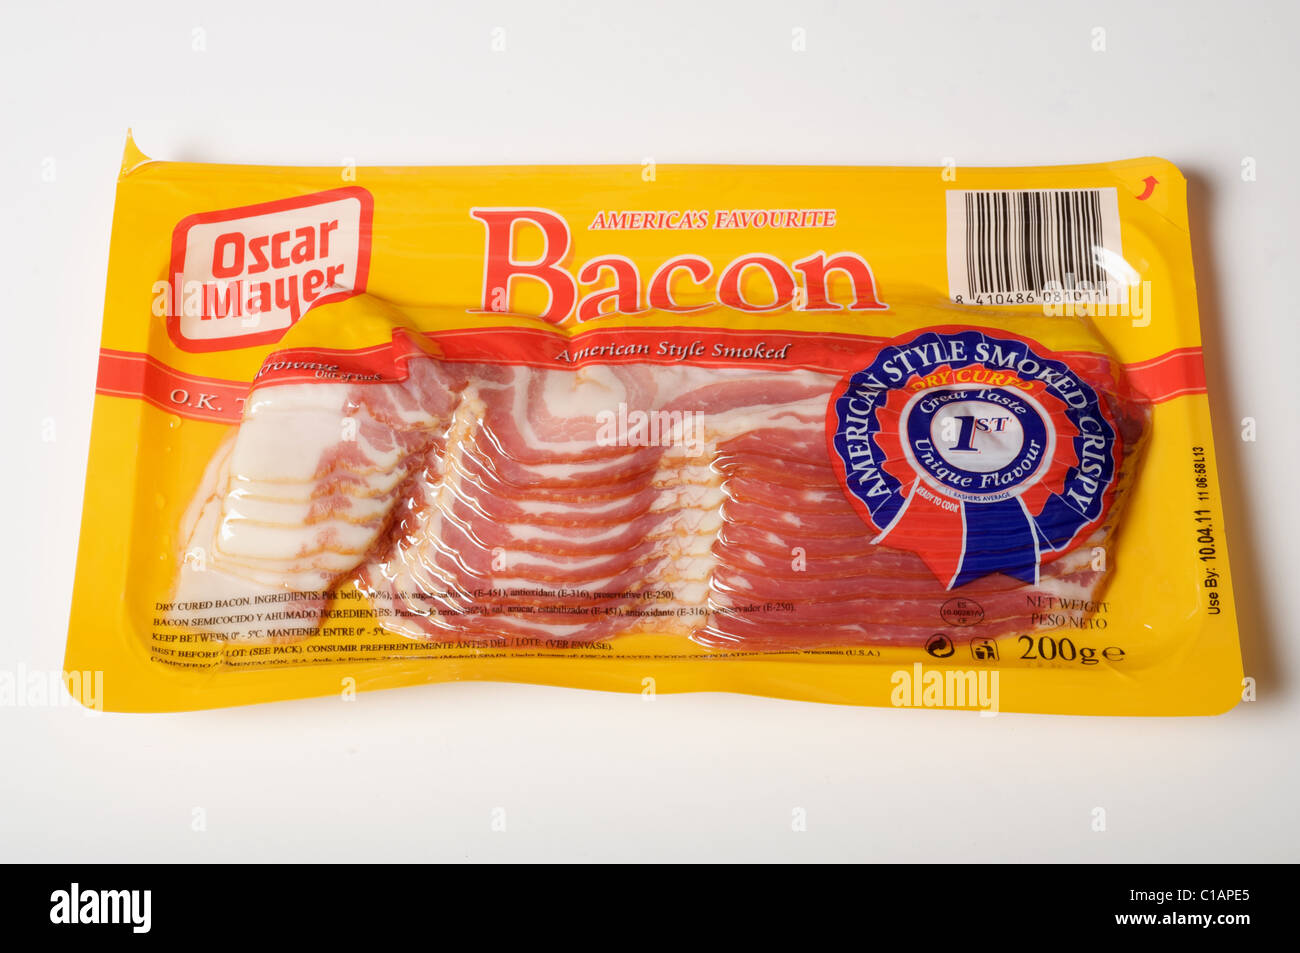 Pack of Oscar Mayer American smoked bacon - Stock Image